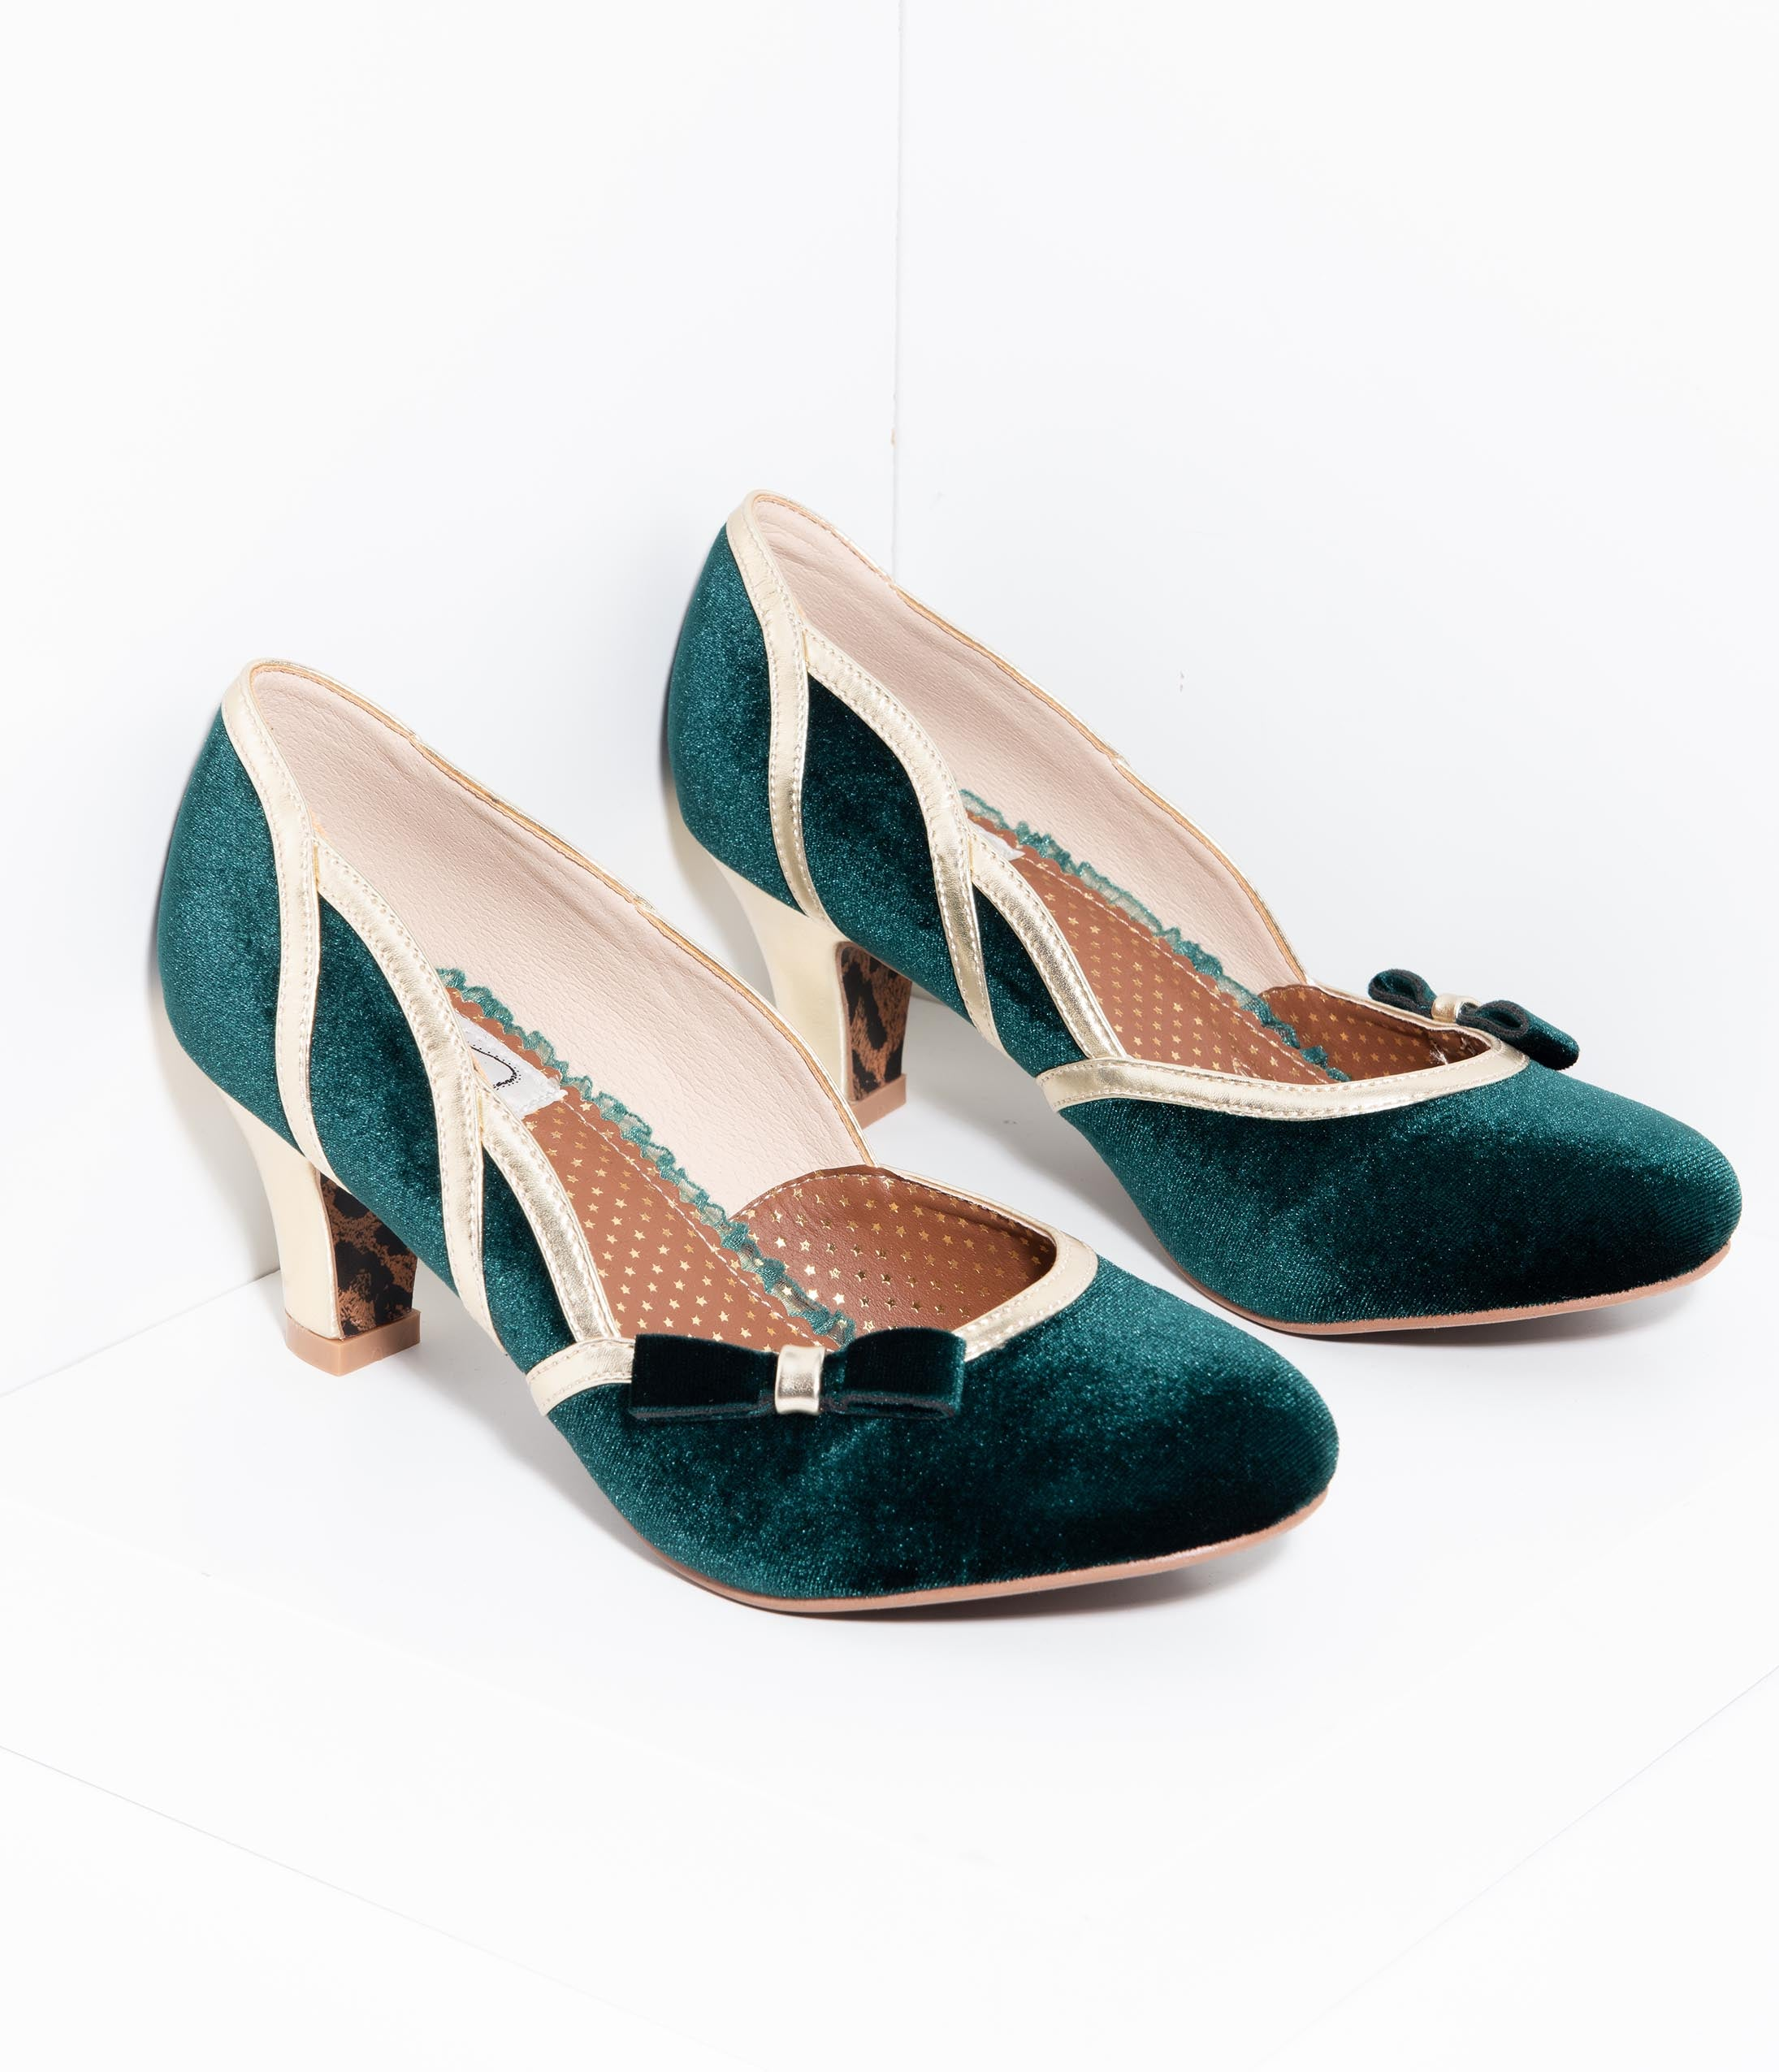 1950s Shoe Styles: Heels, Flats, Sandals, Saddles Shoes Bettie Page 1950S Style Emerald Green Suede  Gold Trim Camille Heels $76.00 AT vintagedancer.com